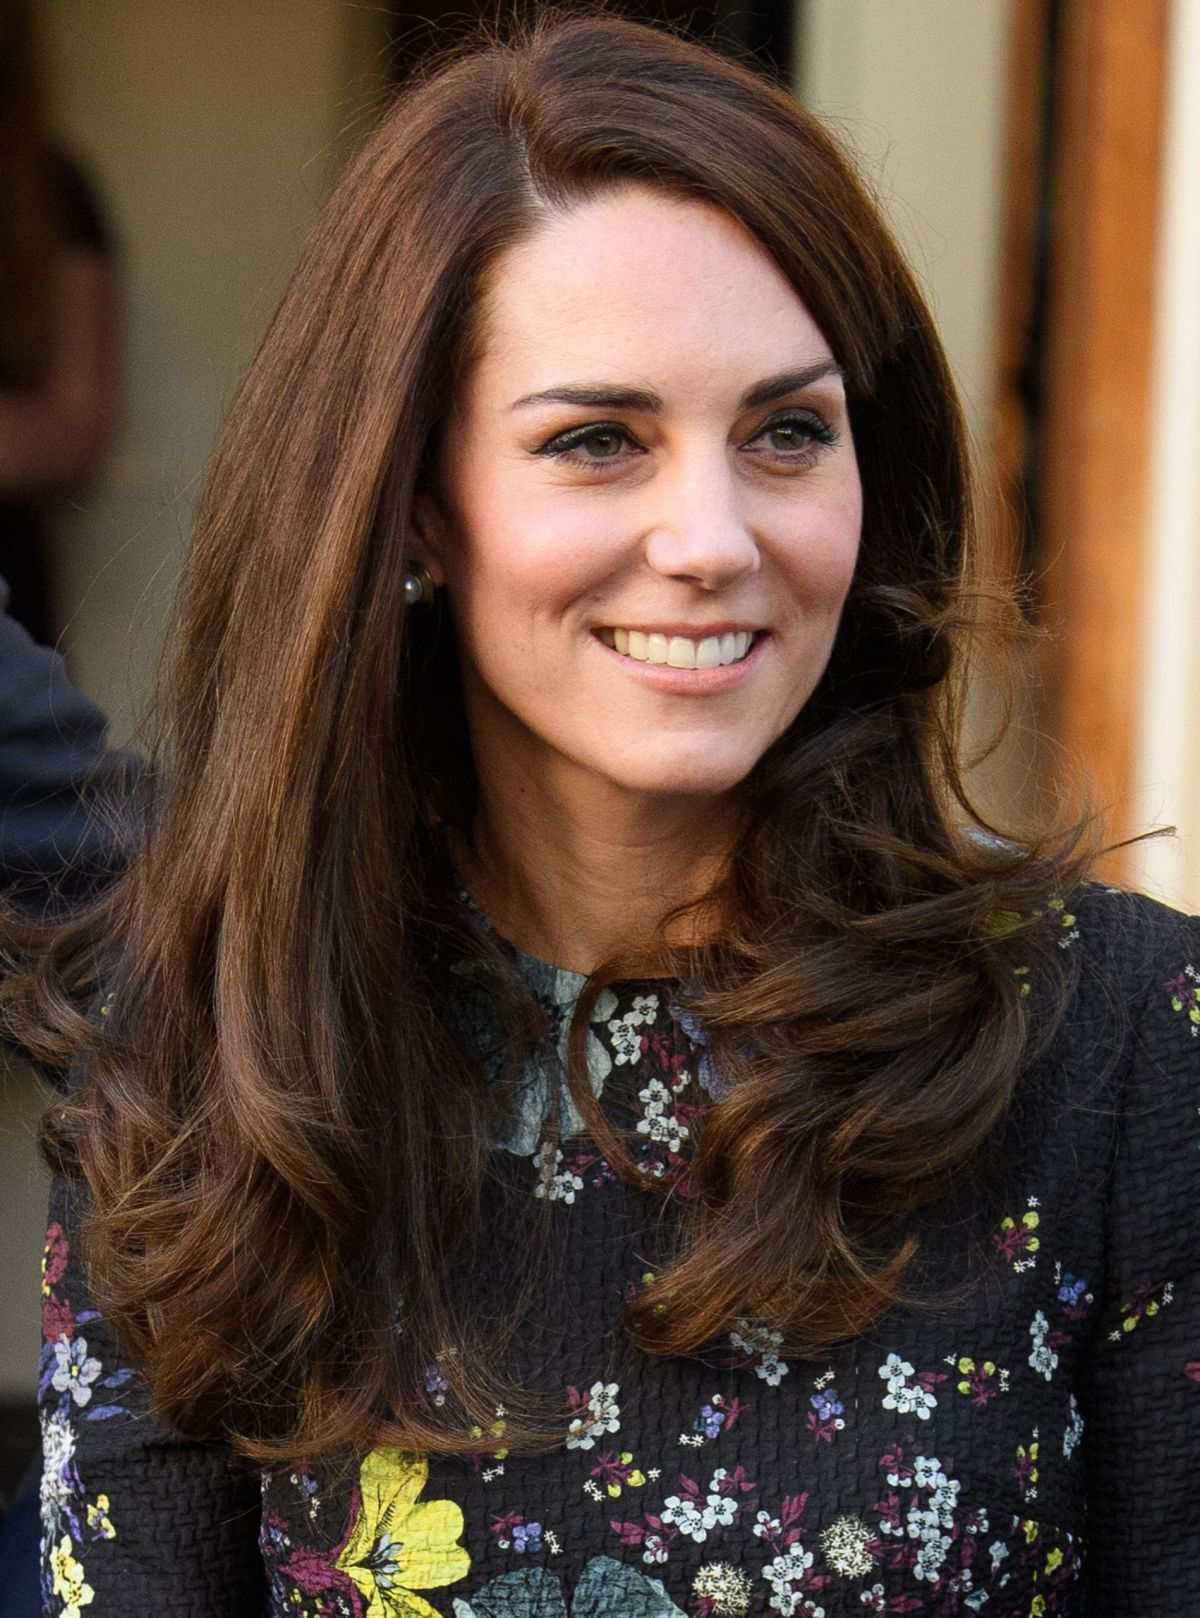 Kate Middleton S Hair How She Cares For It Styles It And Covers Greys Woman Home